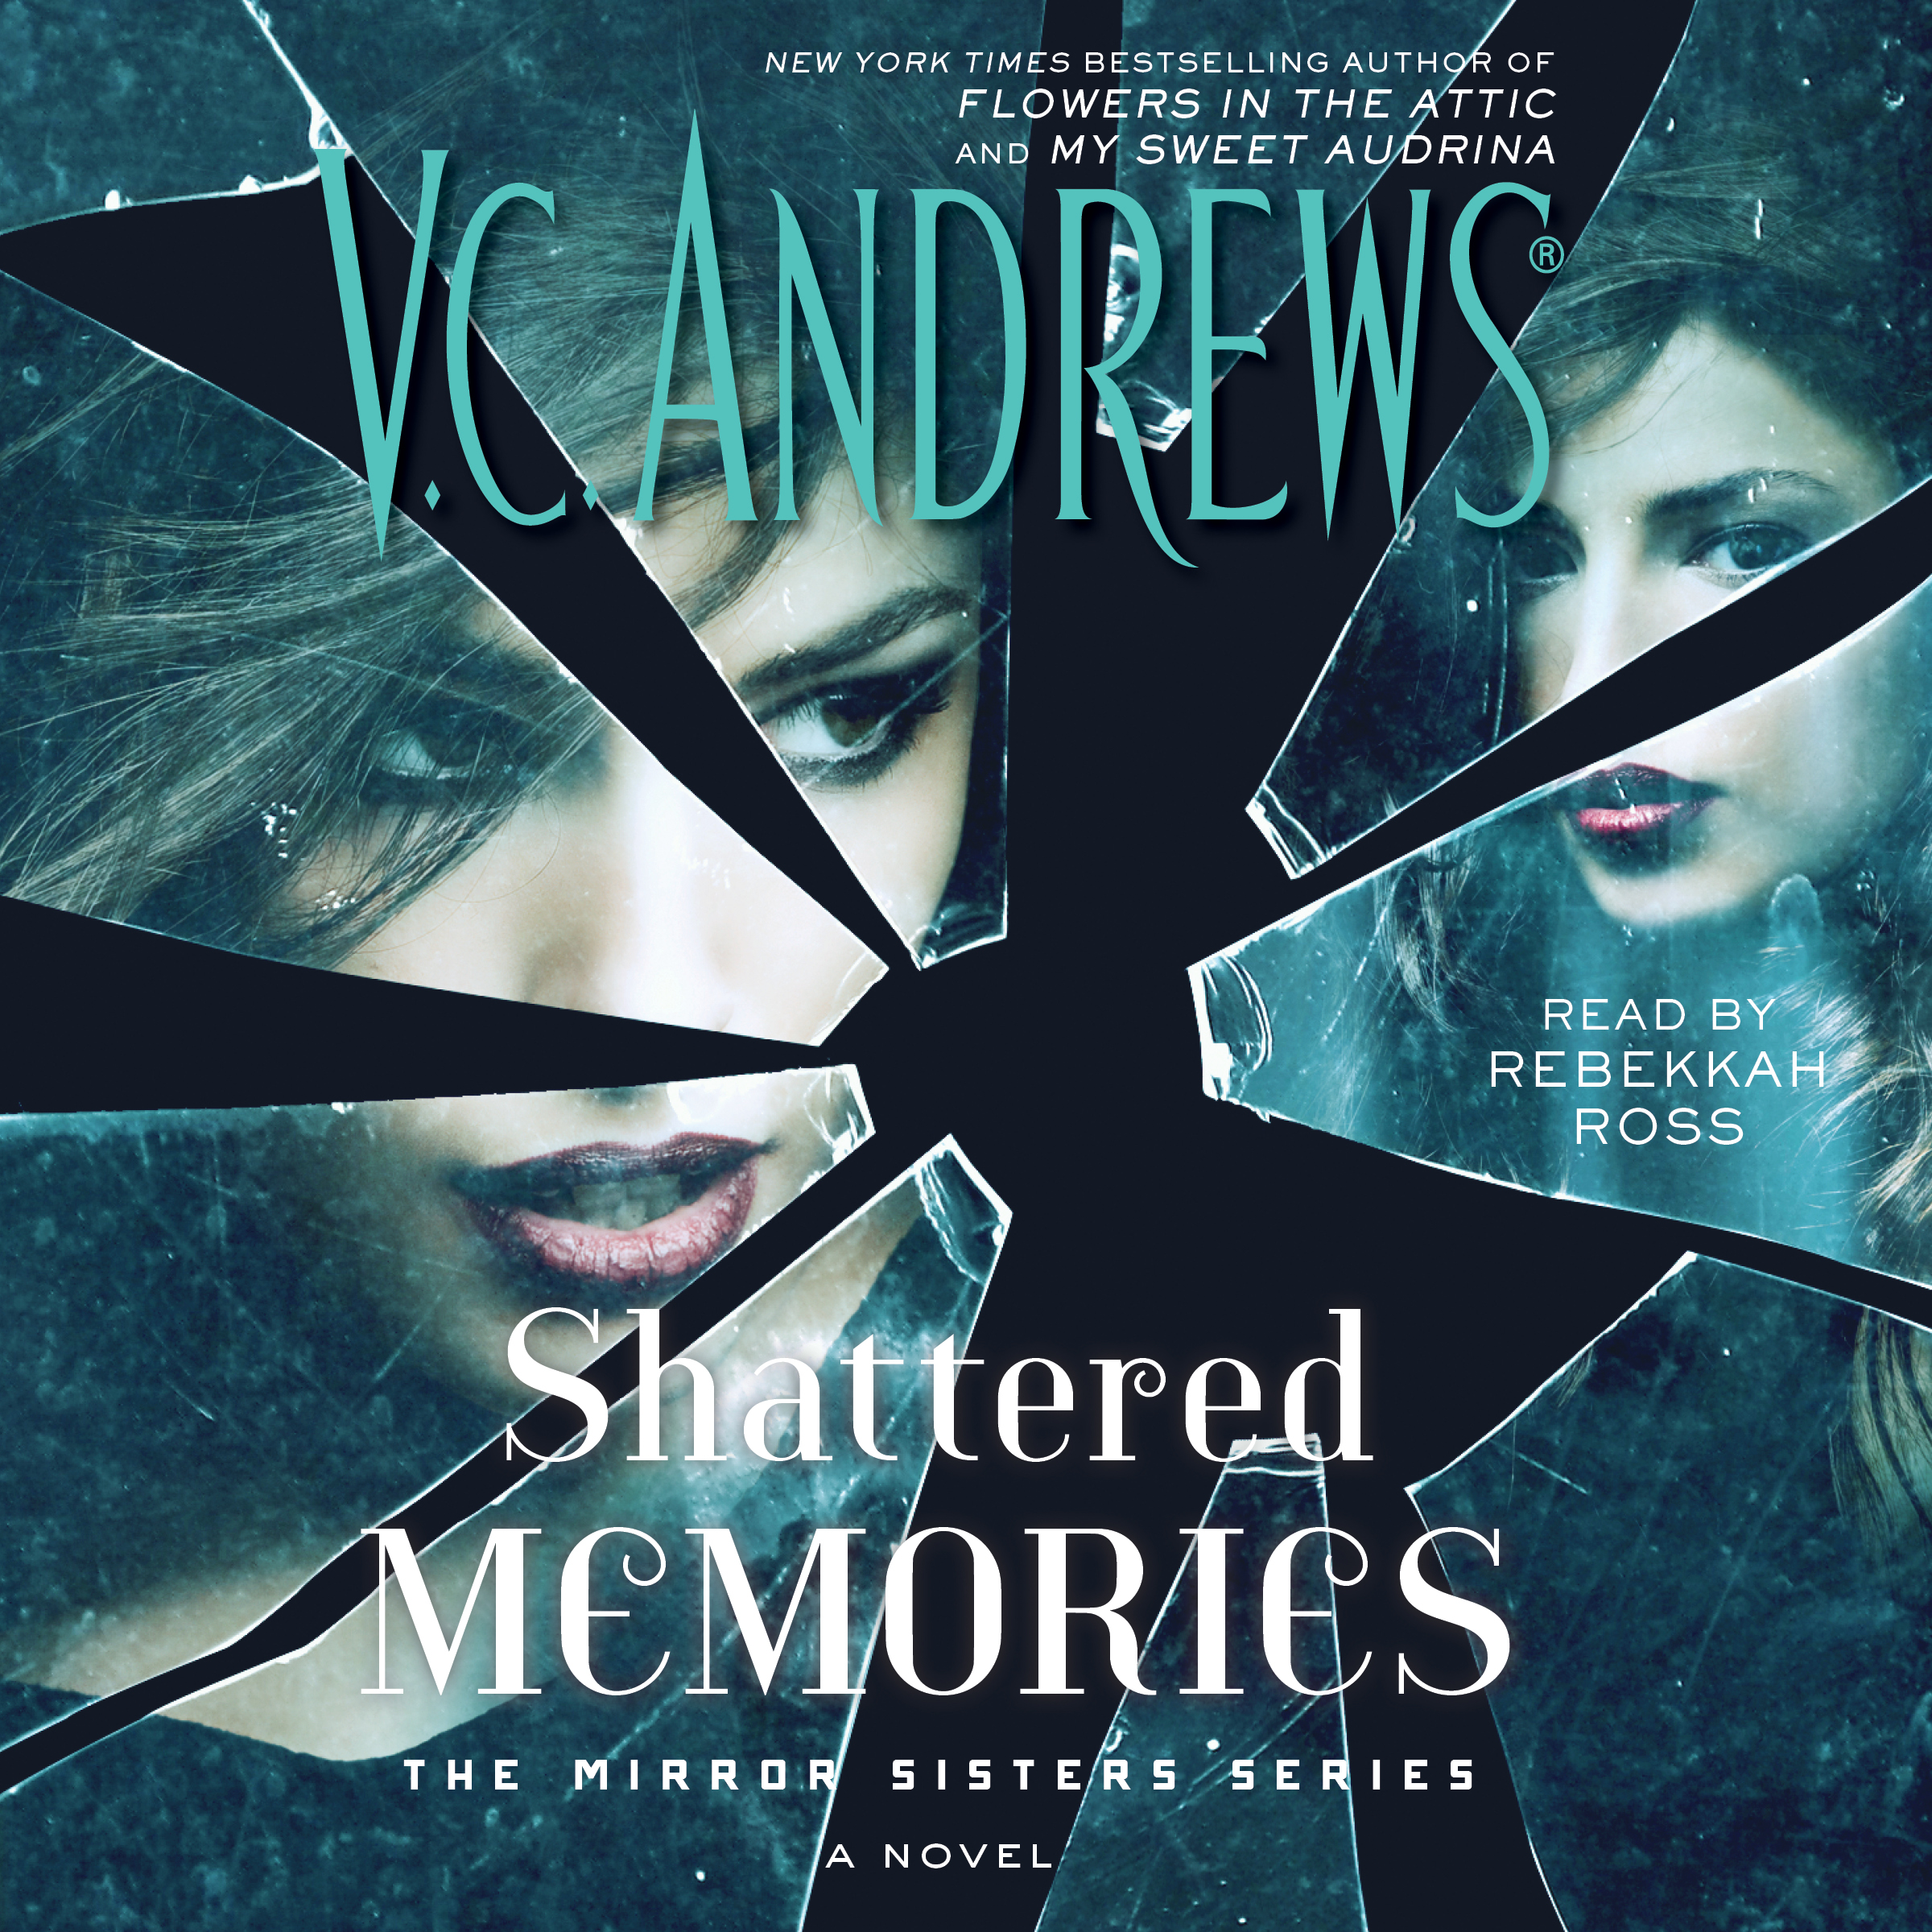 Shattered memories 9781508245155 hr